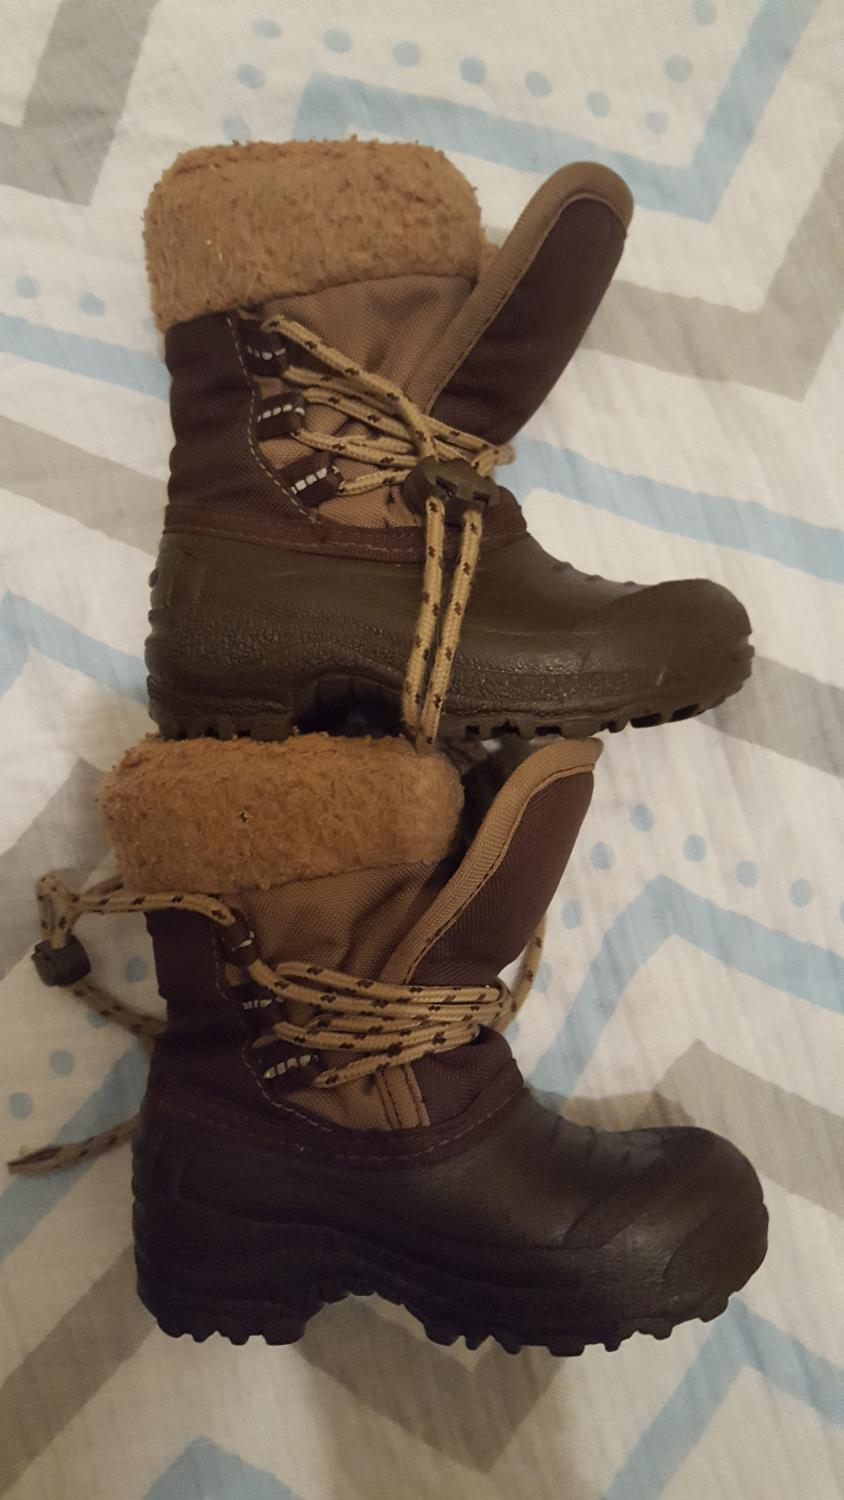 Best Sportek Size 7 Winter Boots For Sale In Airdrie Alberta For 2020 Discover the range of women's winter and snow boots. varagesale